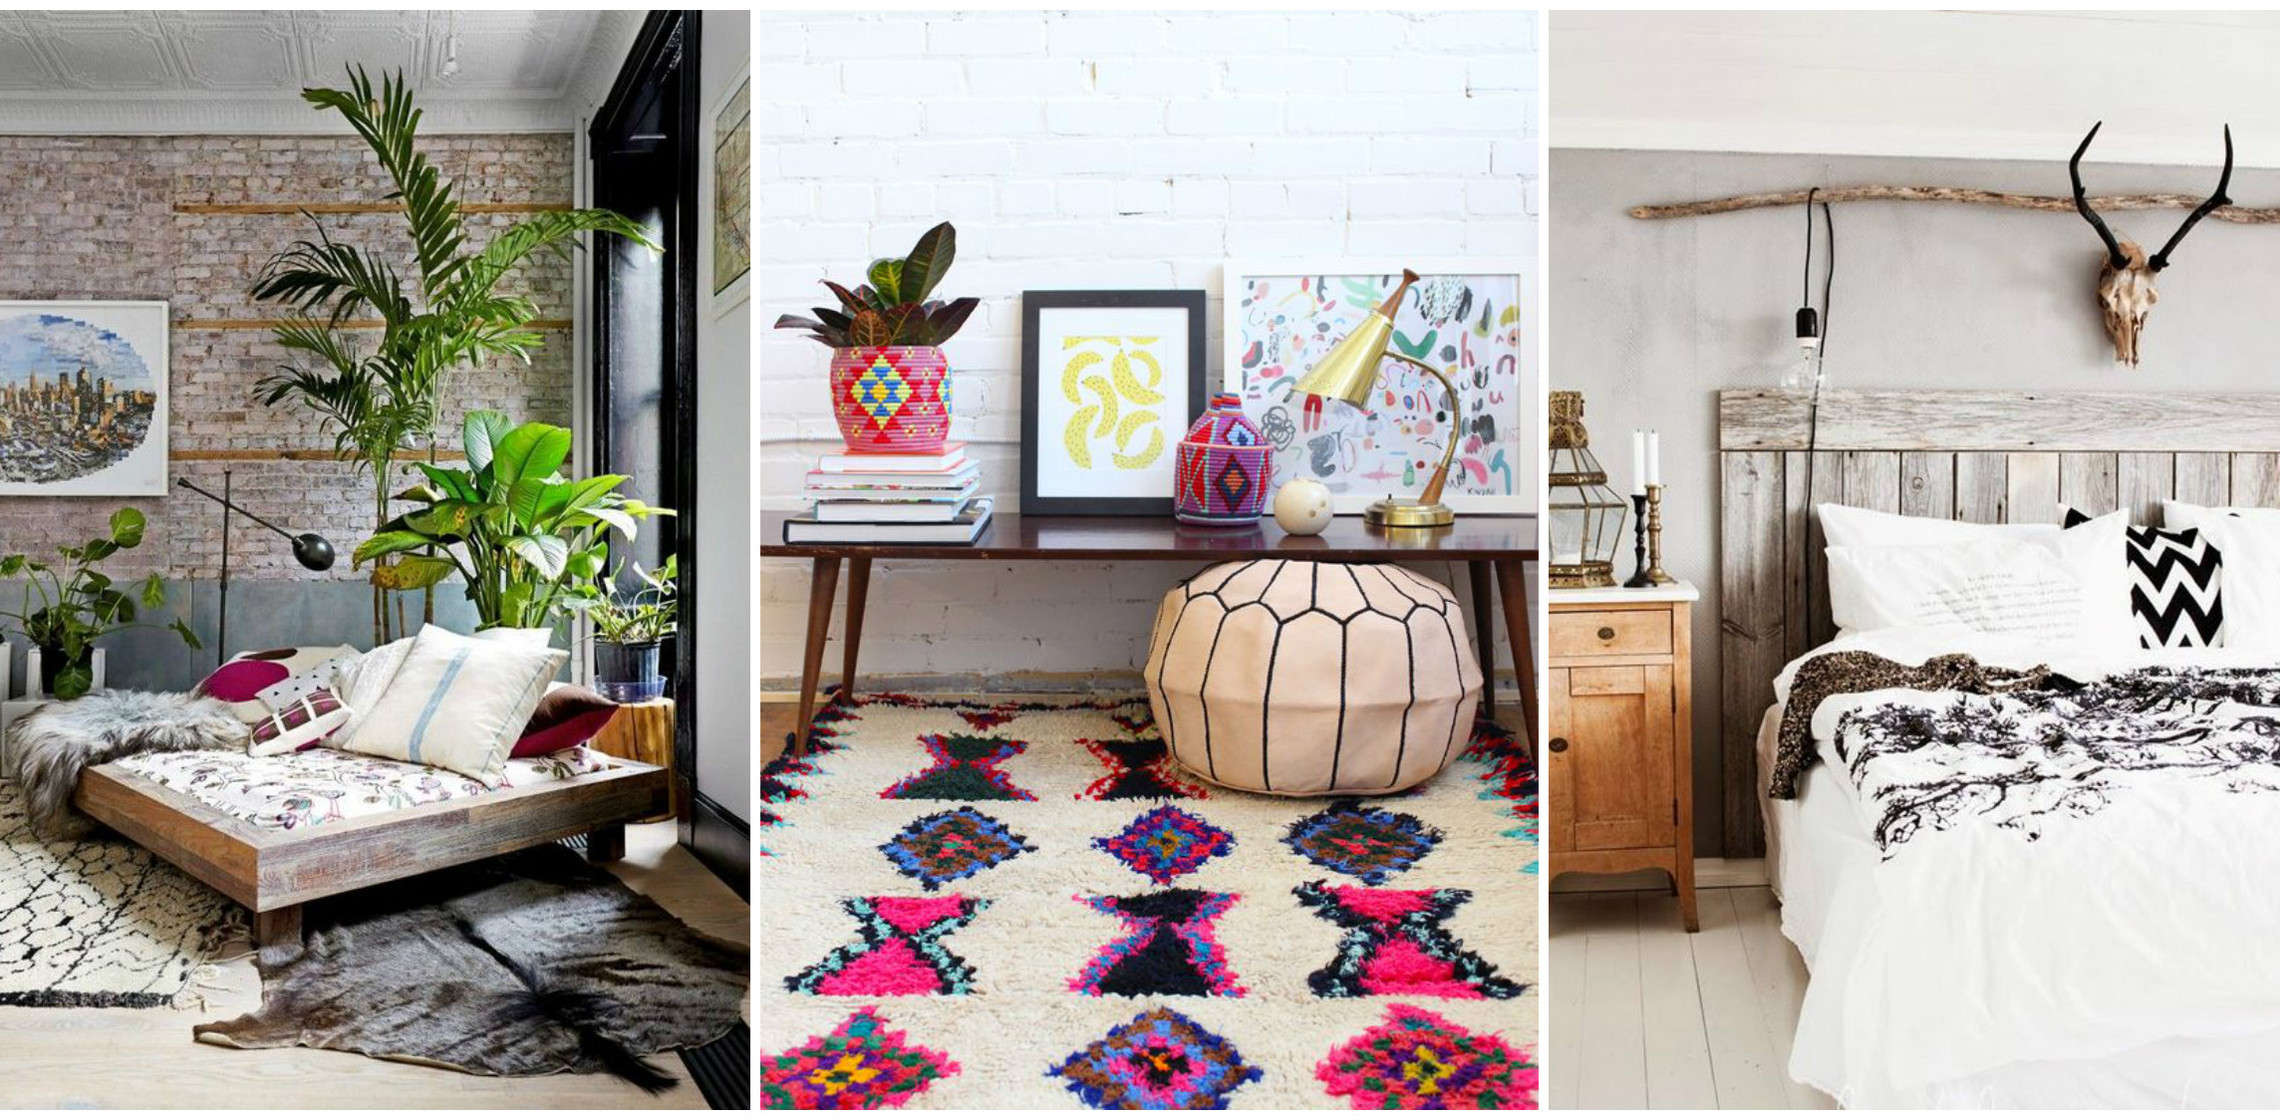 Bohemian Chic Interior.Bohemian How To Achieve Boho Chic Style In Your Home